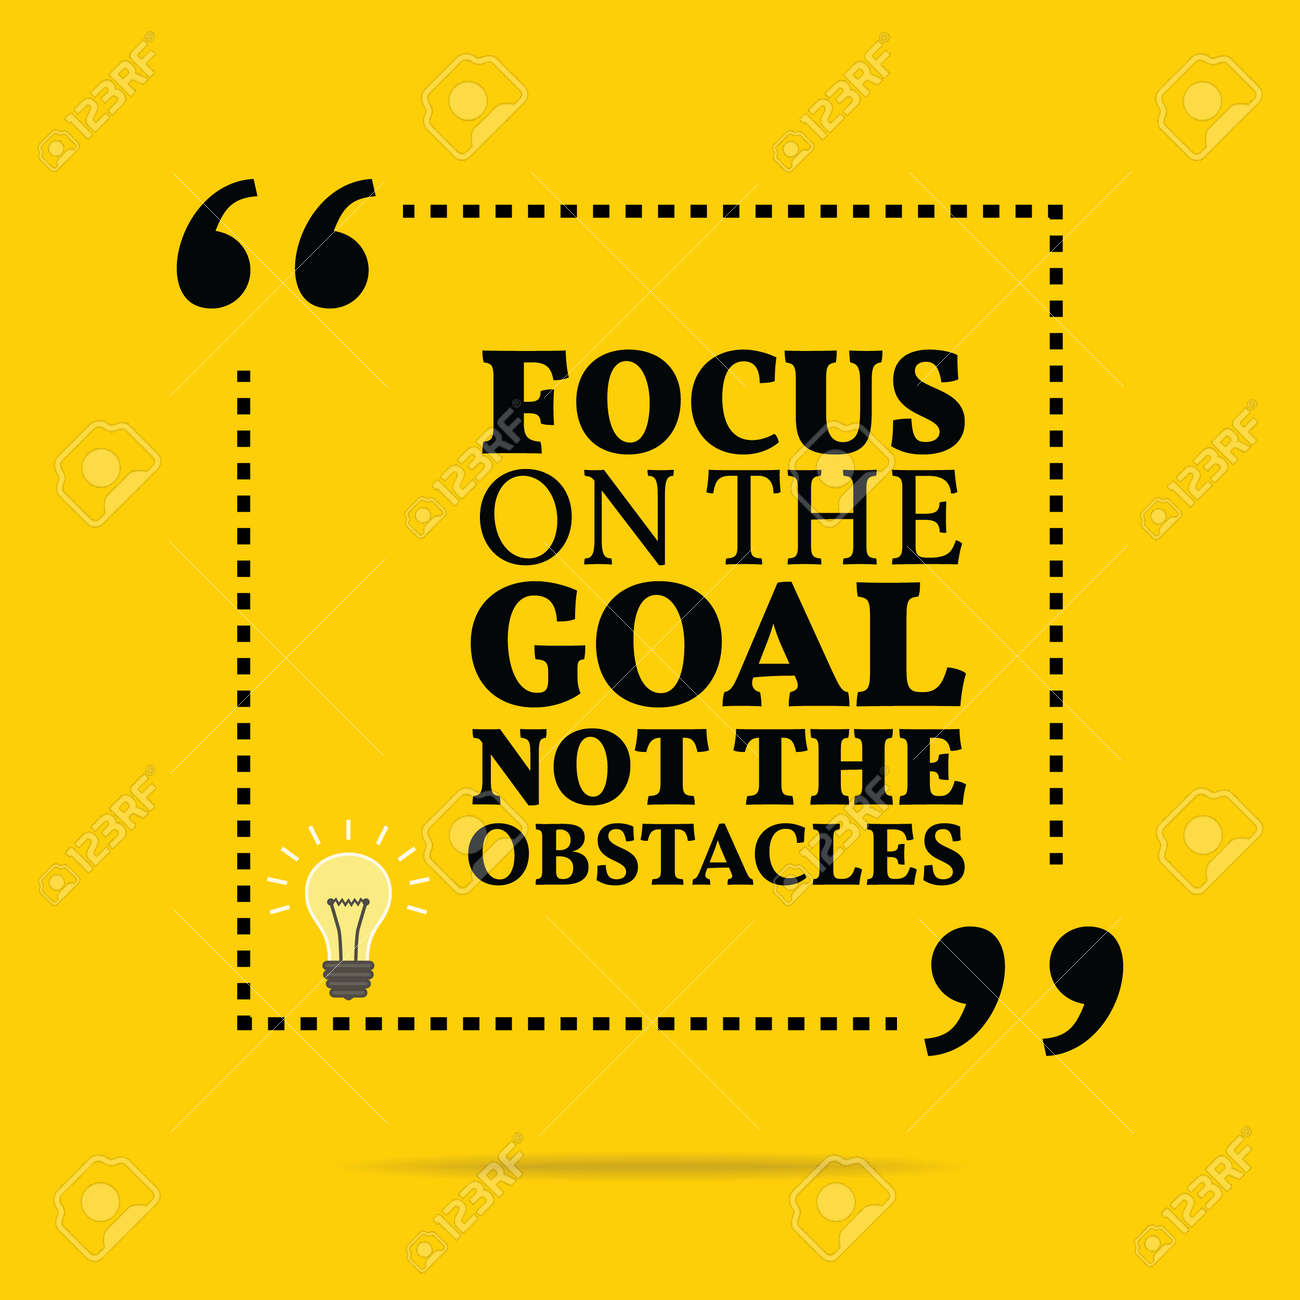 Stock illustration 3d red text quot yes quot stock illustration royalty - Advice Icon Inspirational Motivational Quote Focus On The Goal Not The Obstacles Simple